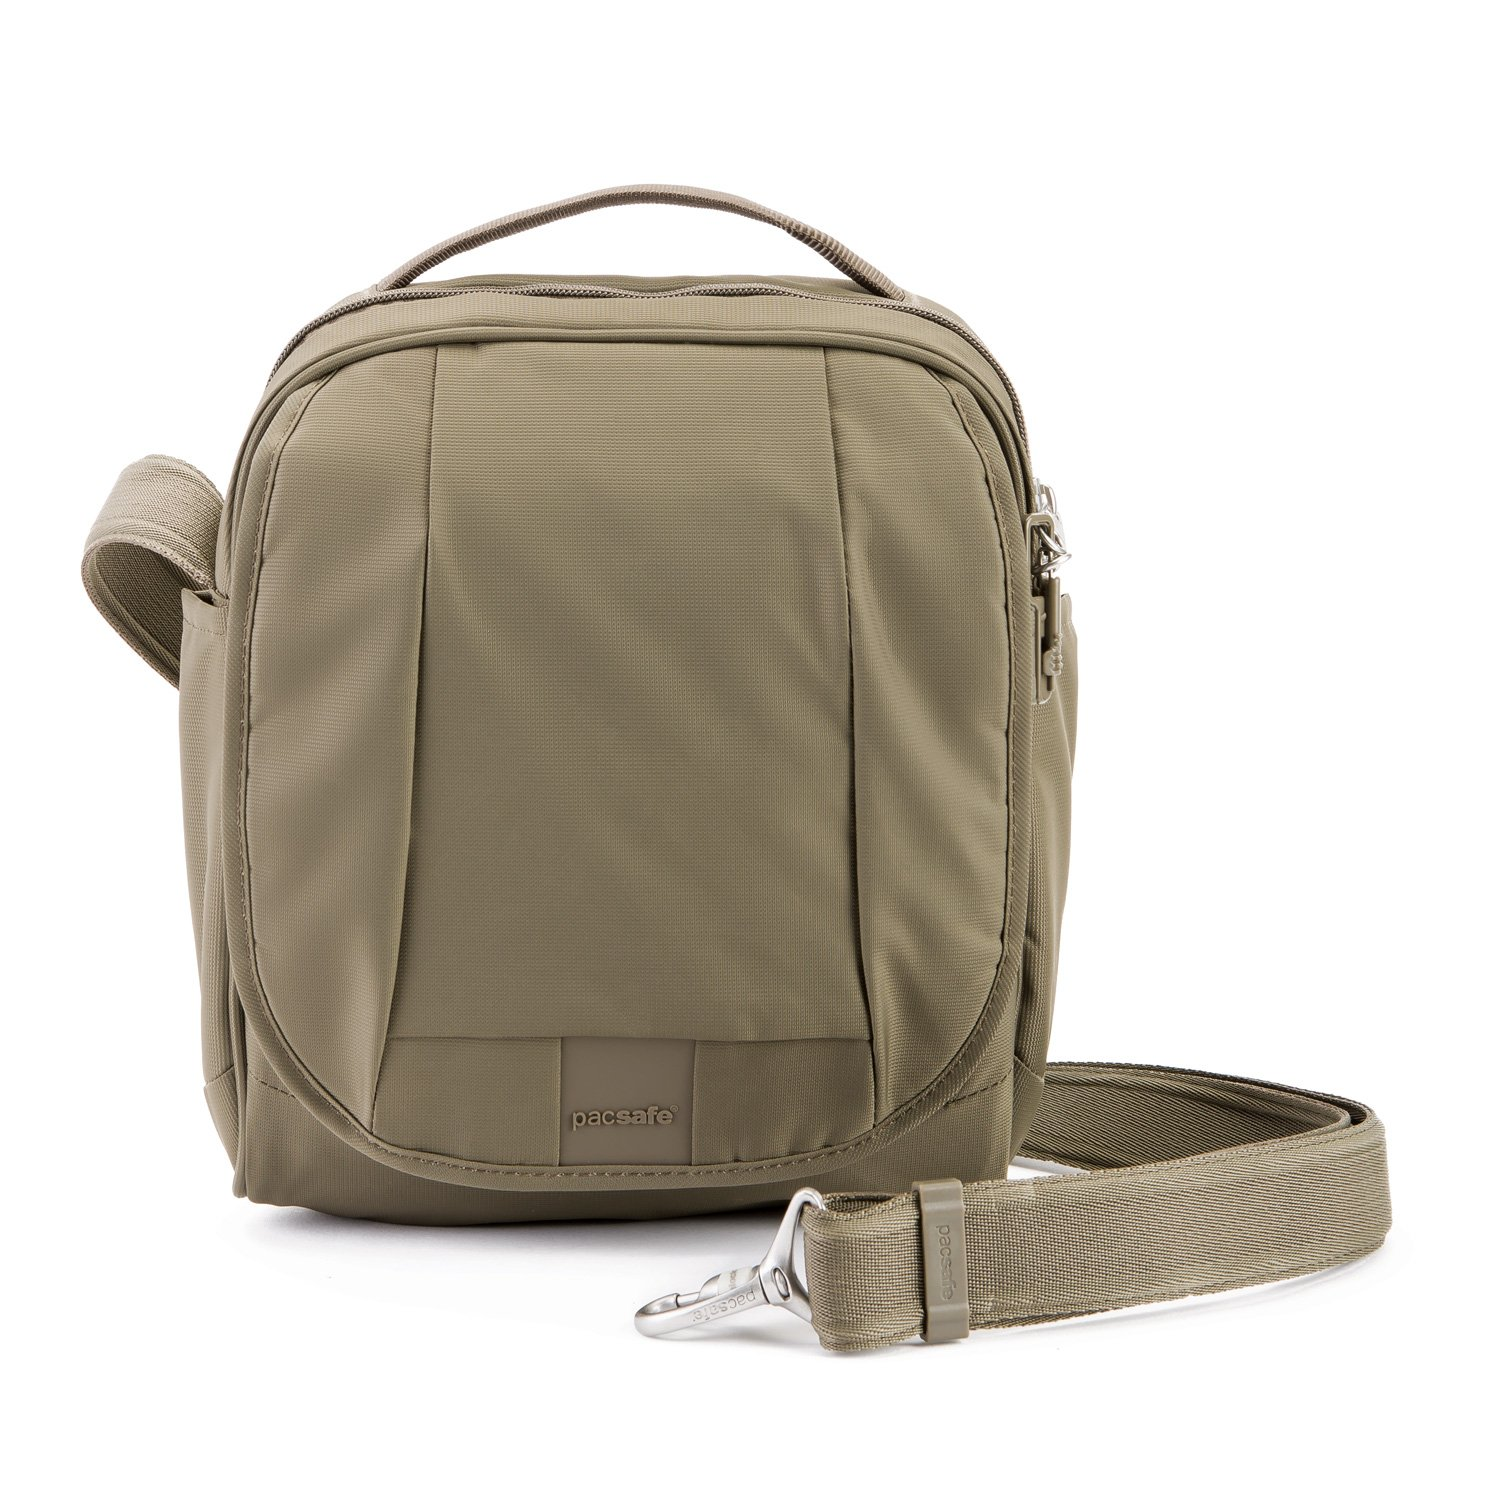 PacSafe Metrosafe Ls200 Anti-Theft Medium Crossbody Travel Cross-Body Bag, Earth Khaki, One Size